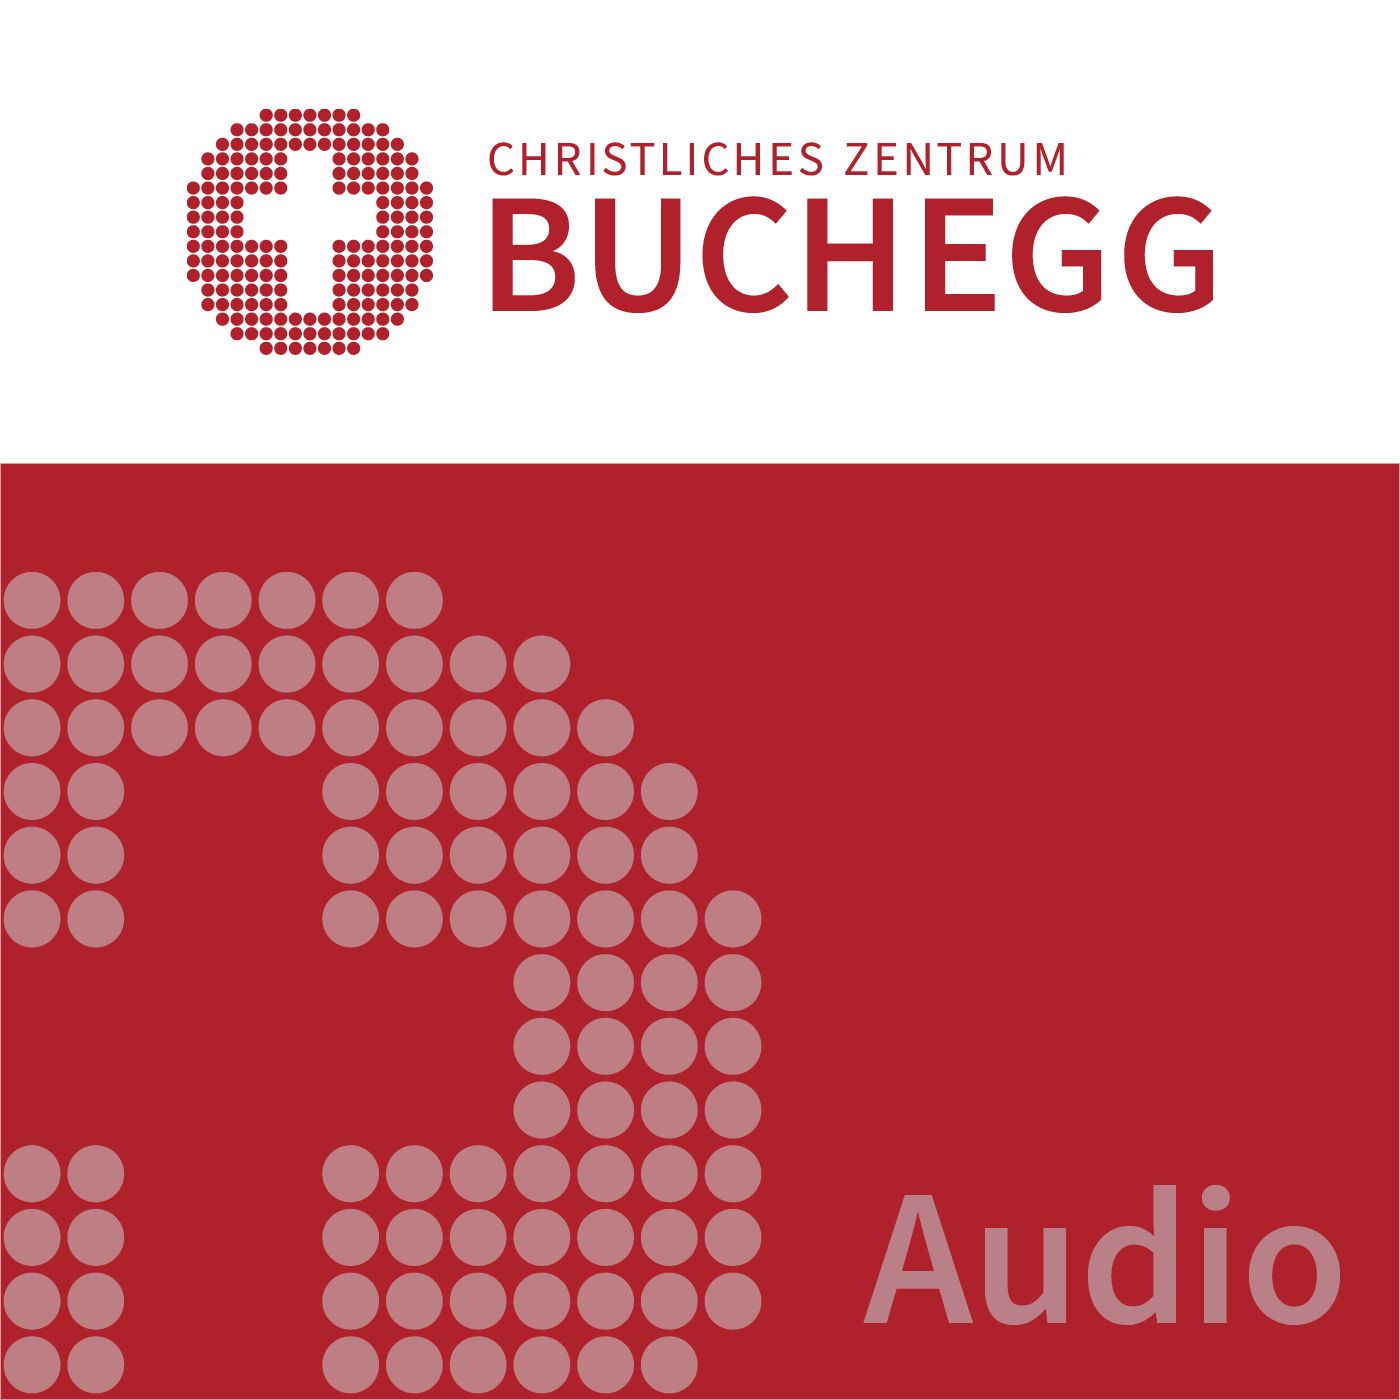 Services of the Christian Center Buchegg (Audio)